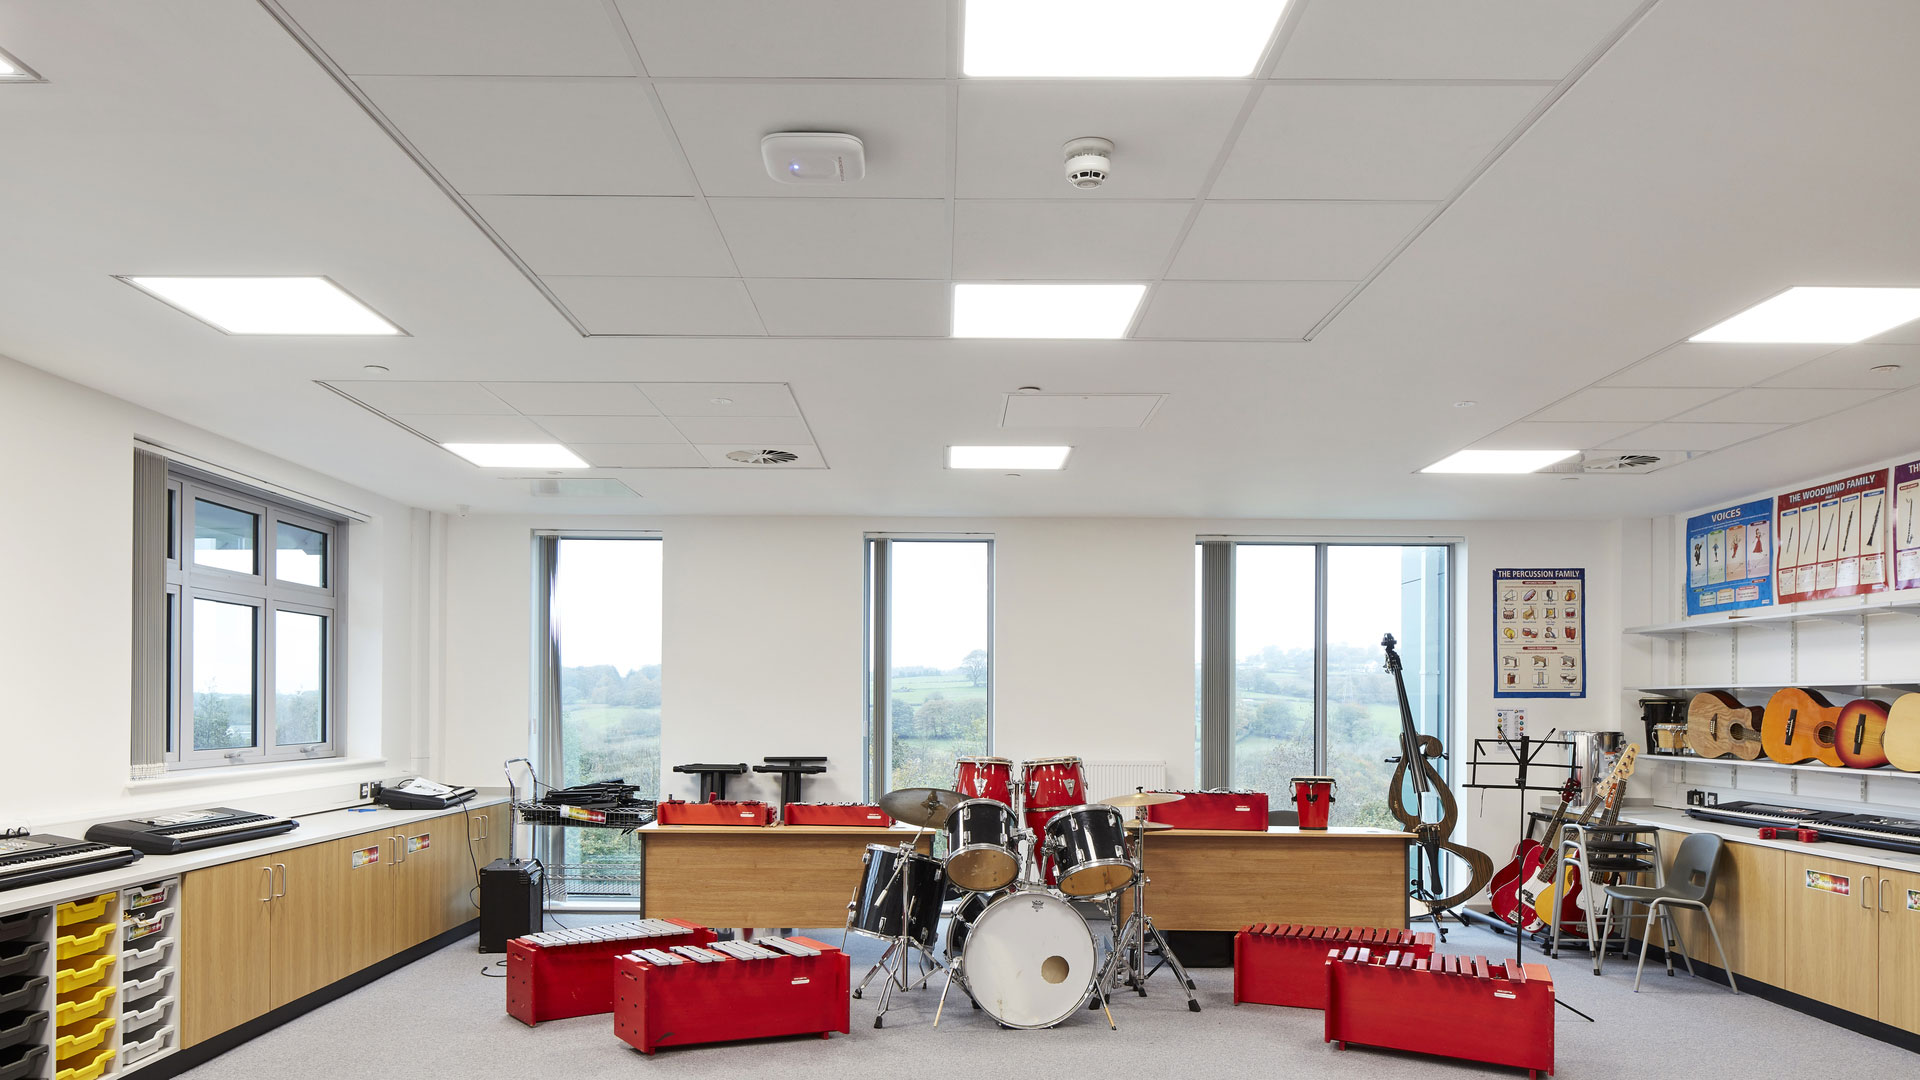 Room to room sound insulation and highest sound absorption with Rockfon Blanka dB 46 acoustic ceiling tiles (super white ceiling tiles)